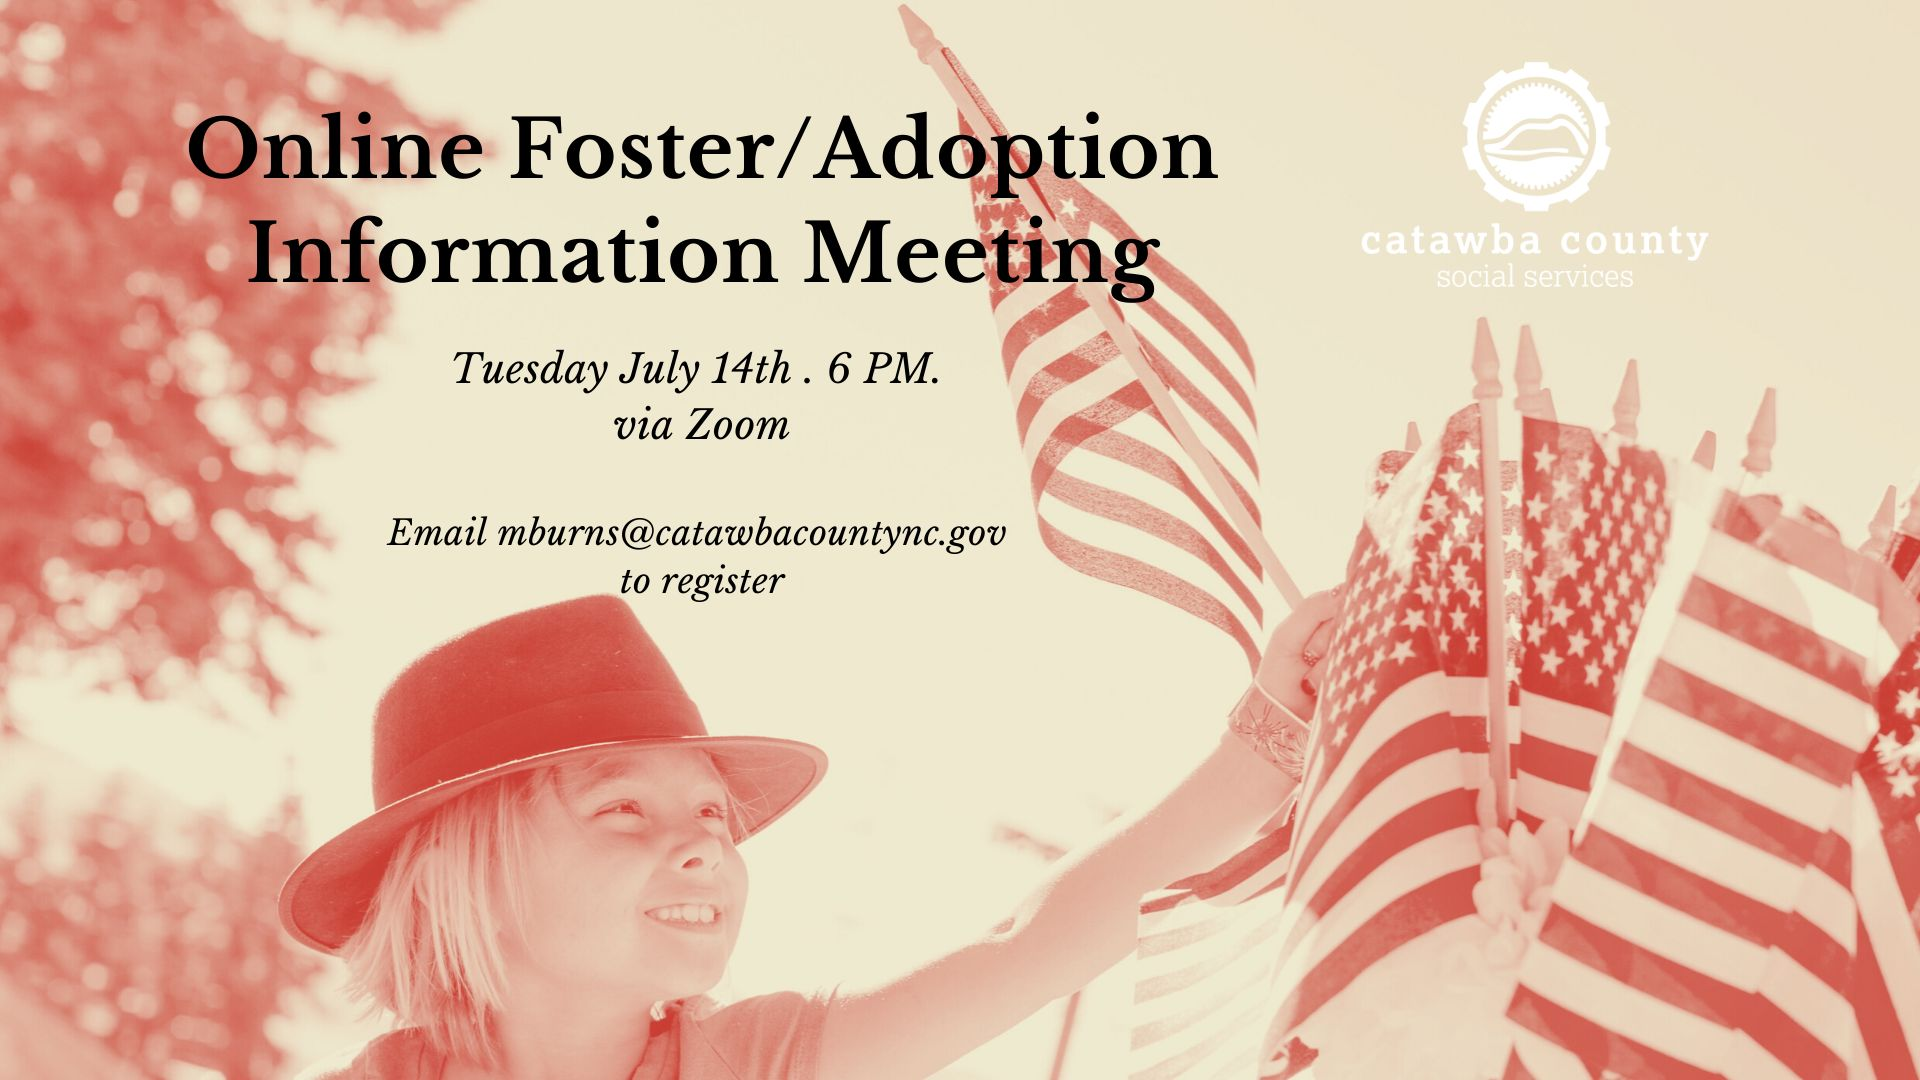 Online Foster/Adoption Information Meeting July 14